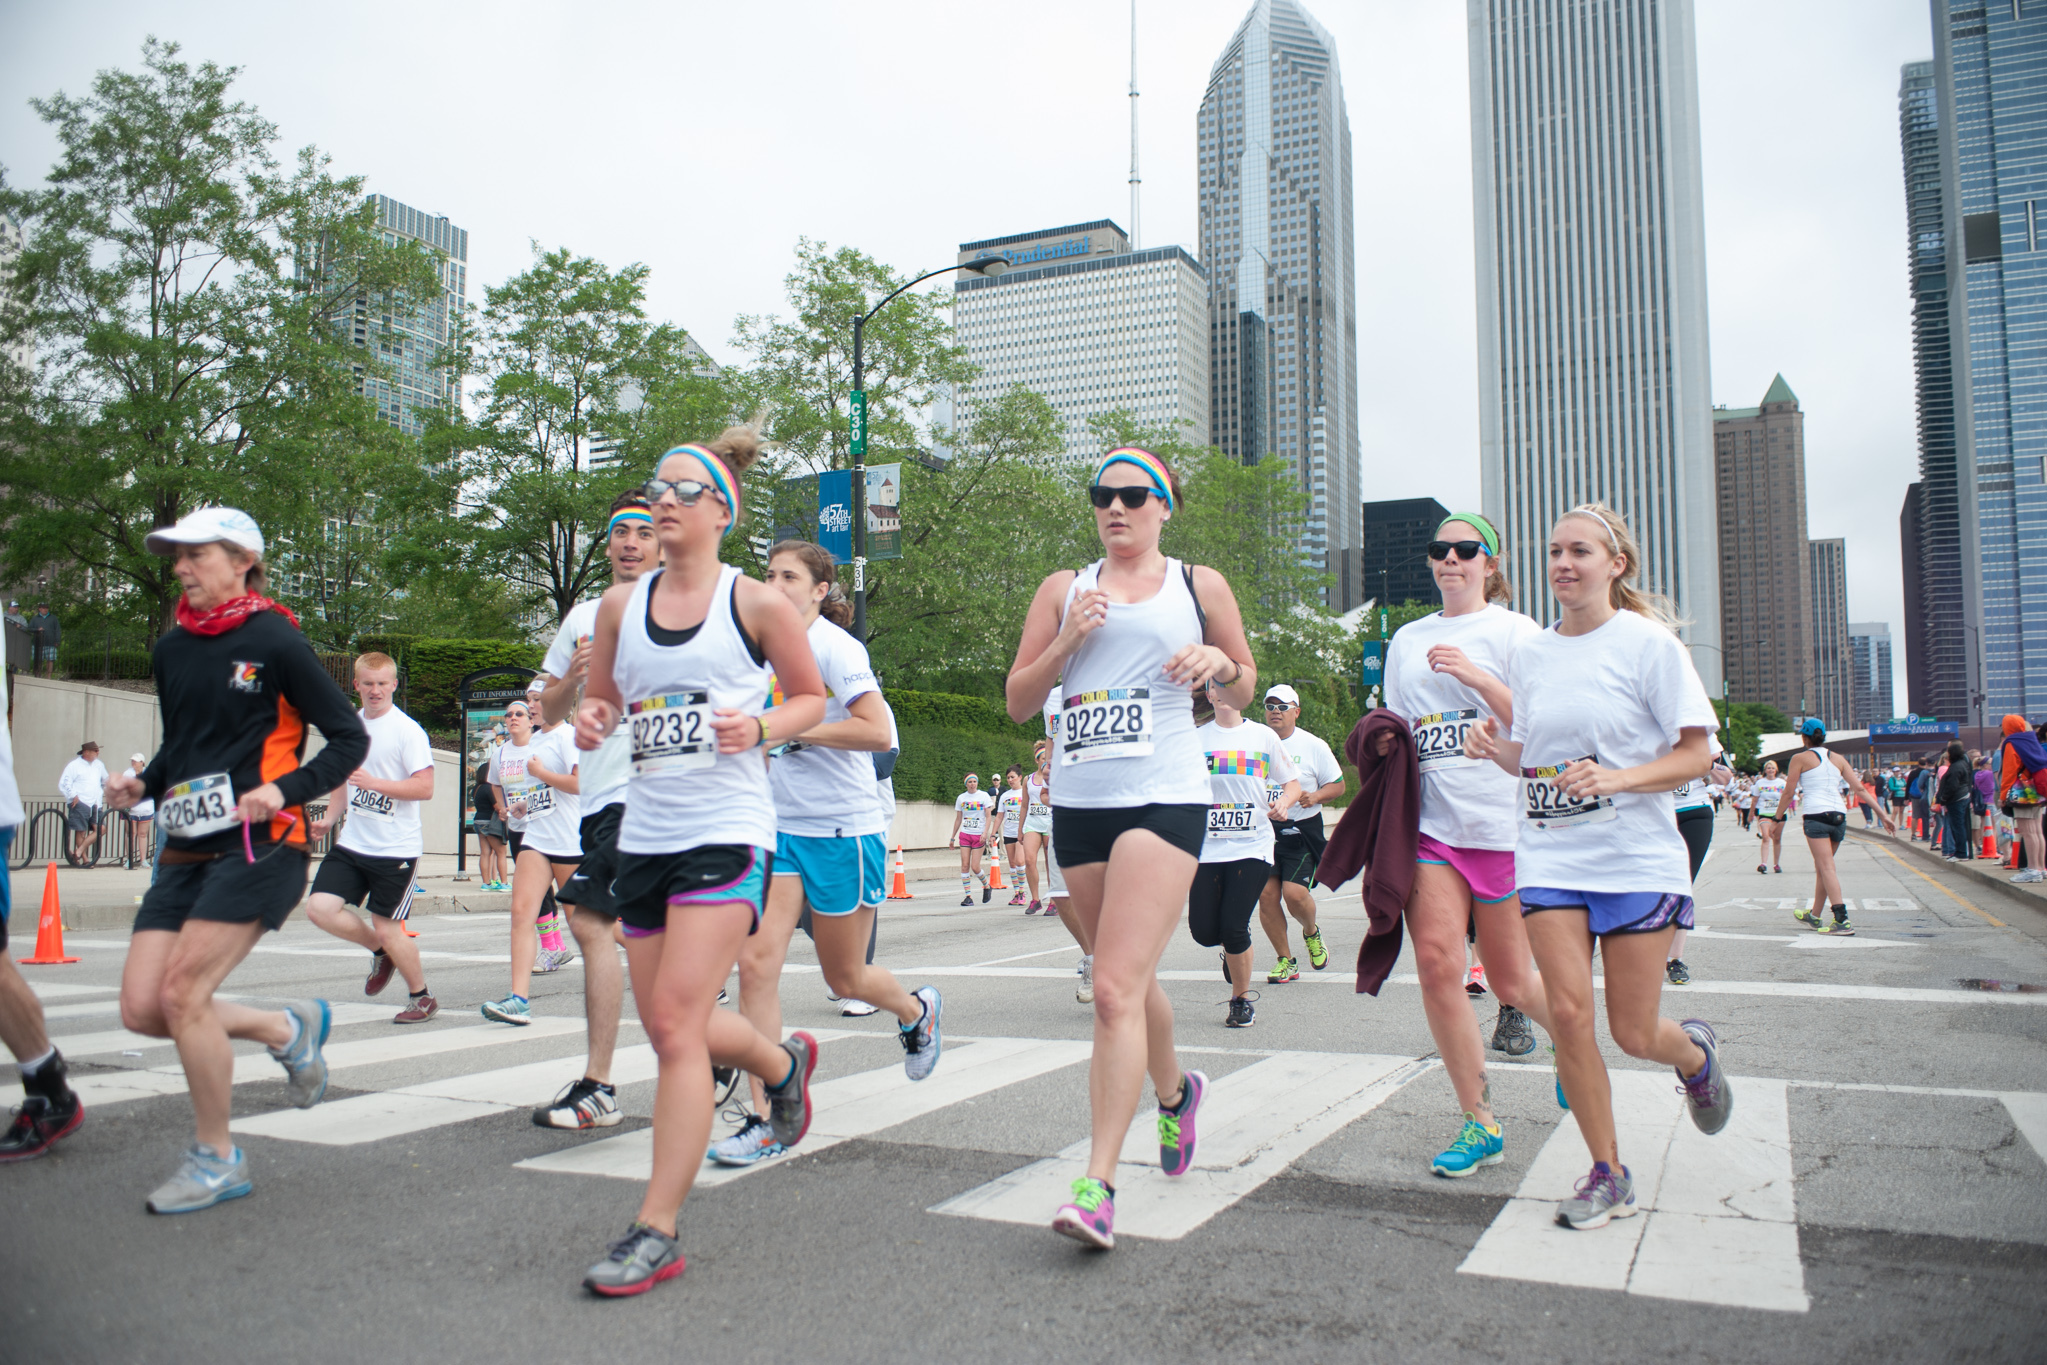 Runners get doused with powdered color at the Color Run 5K through Grant Park on June 8, 2014.